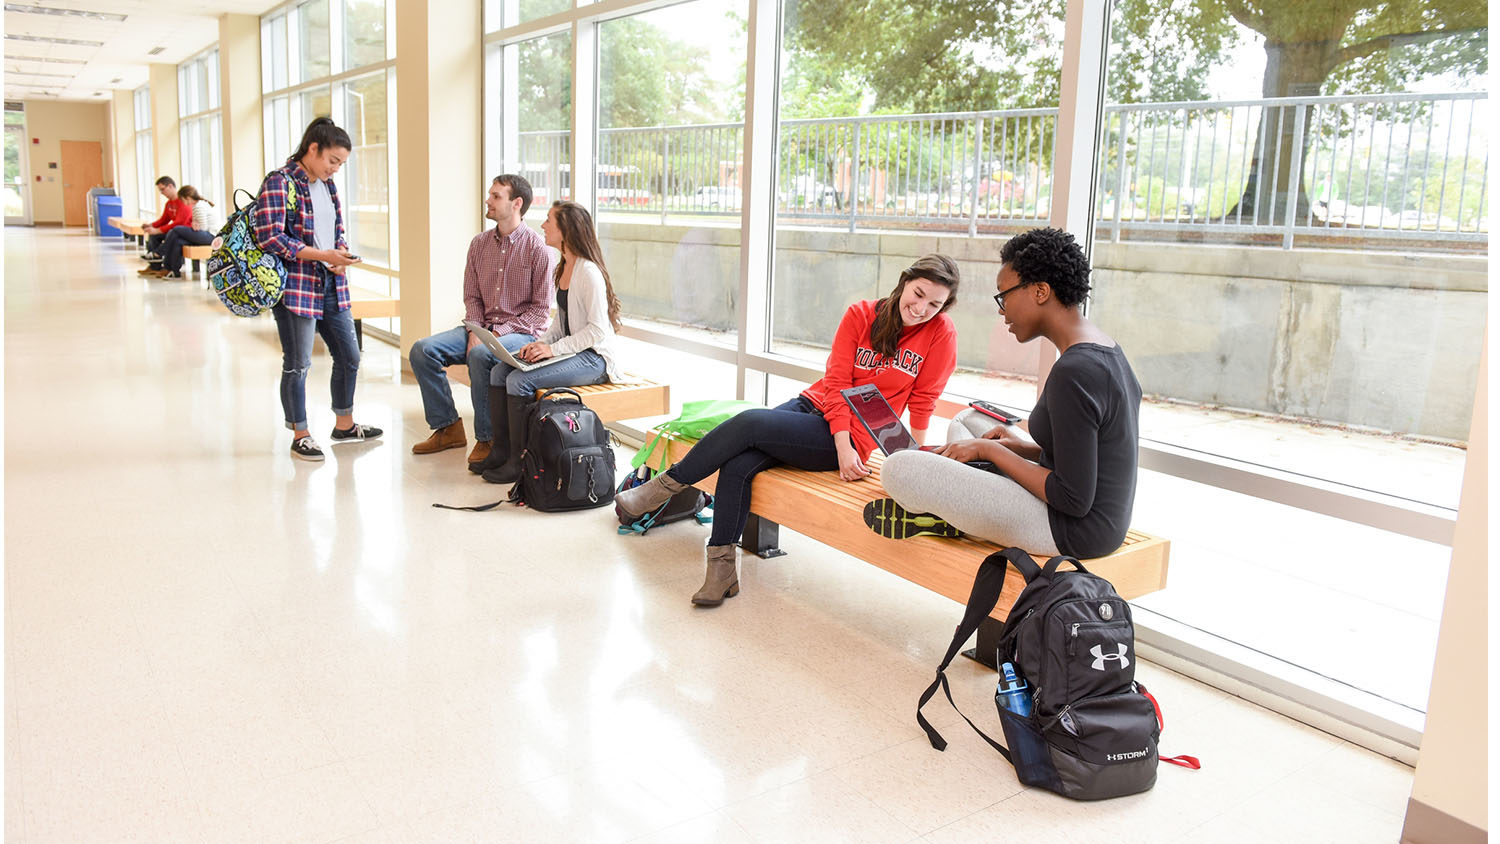 Students in Jordan Hall - Scholarships - College of Natural Resources at NC State University